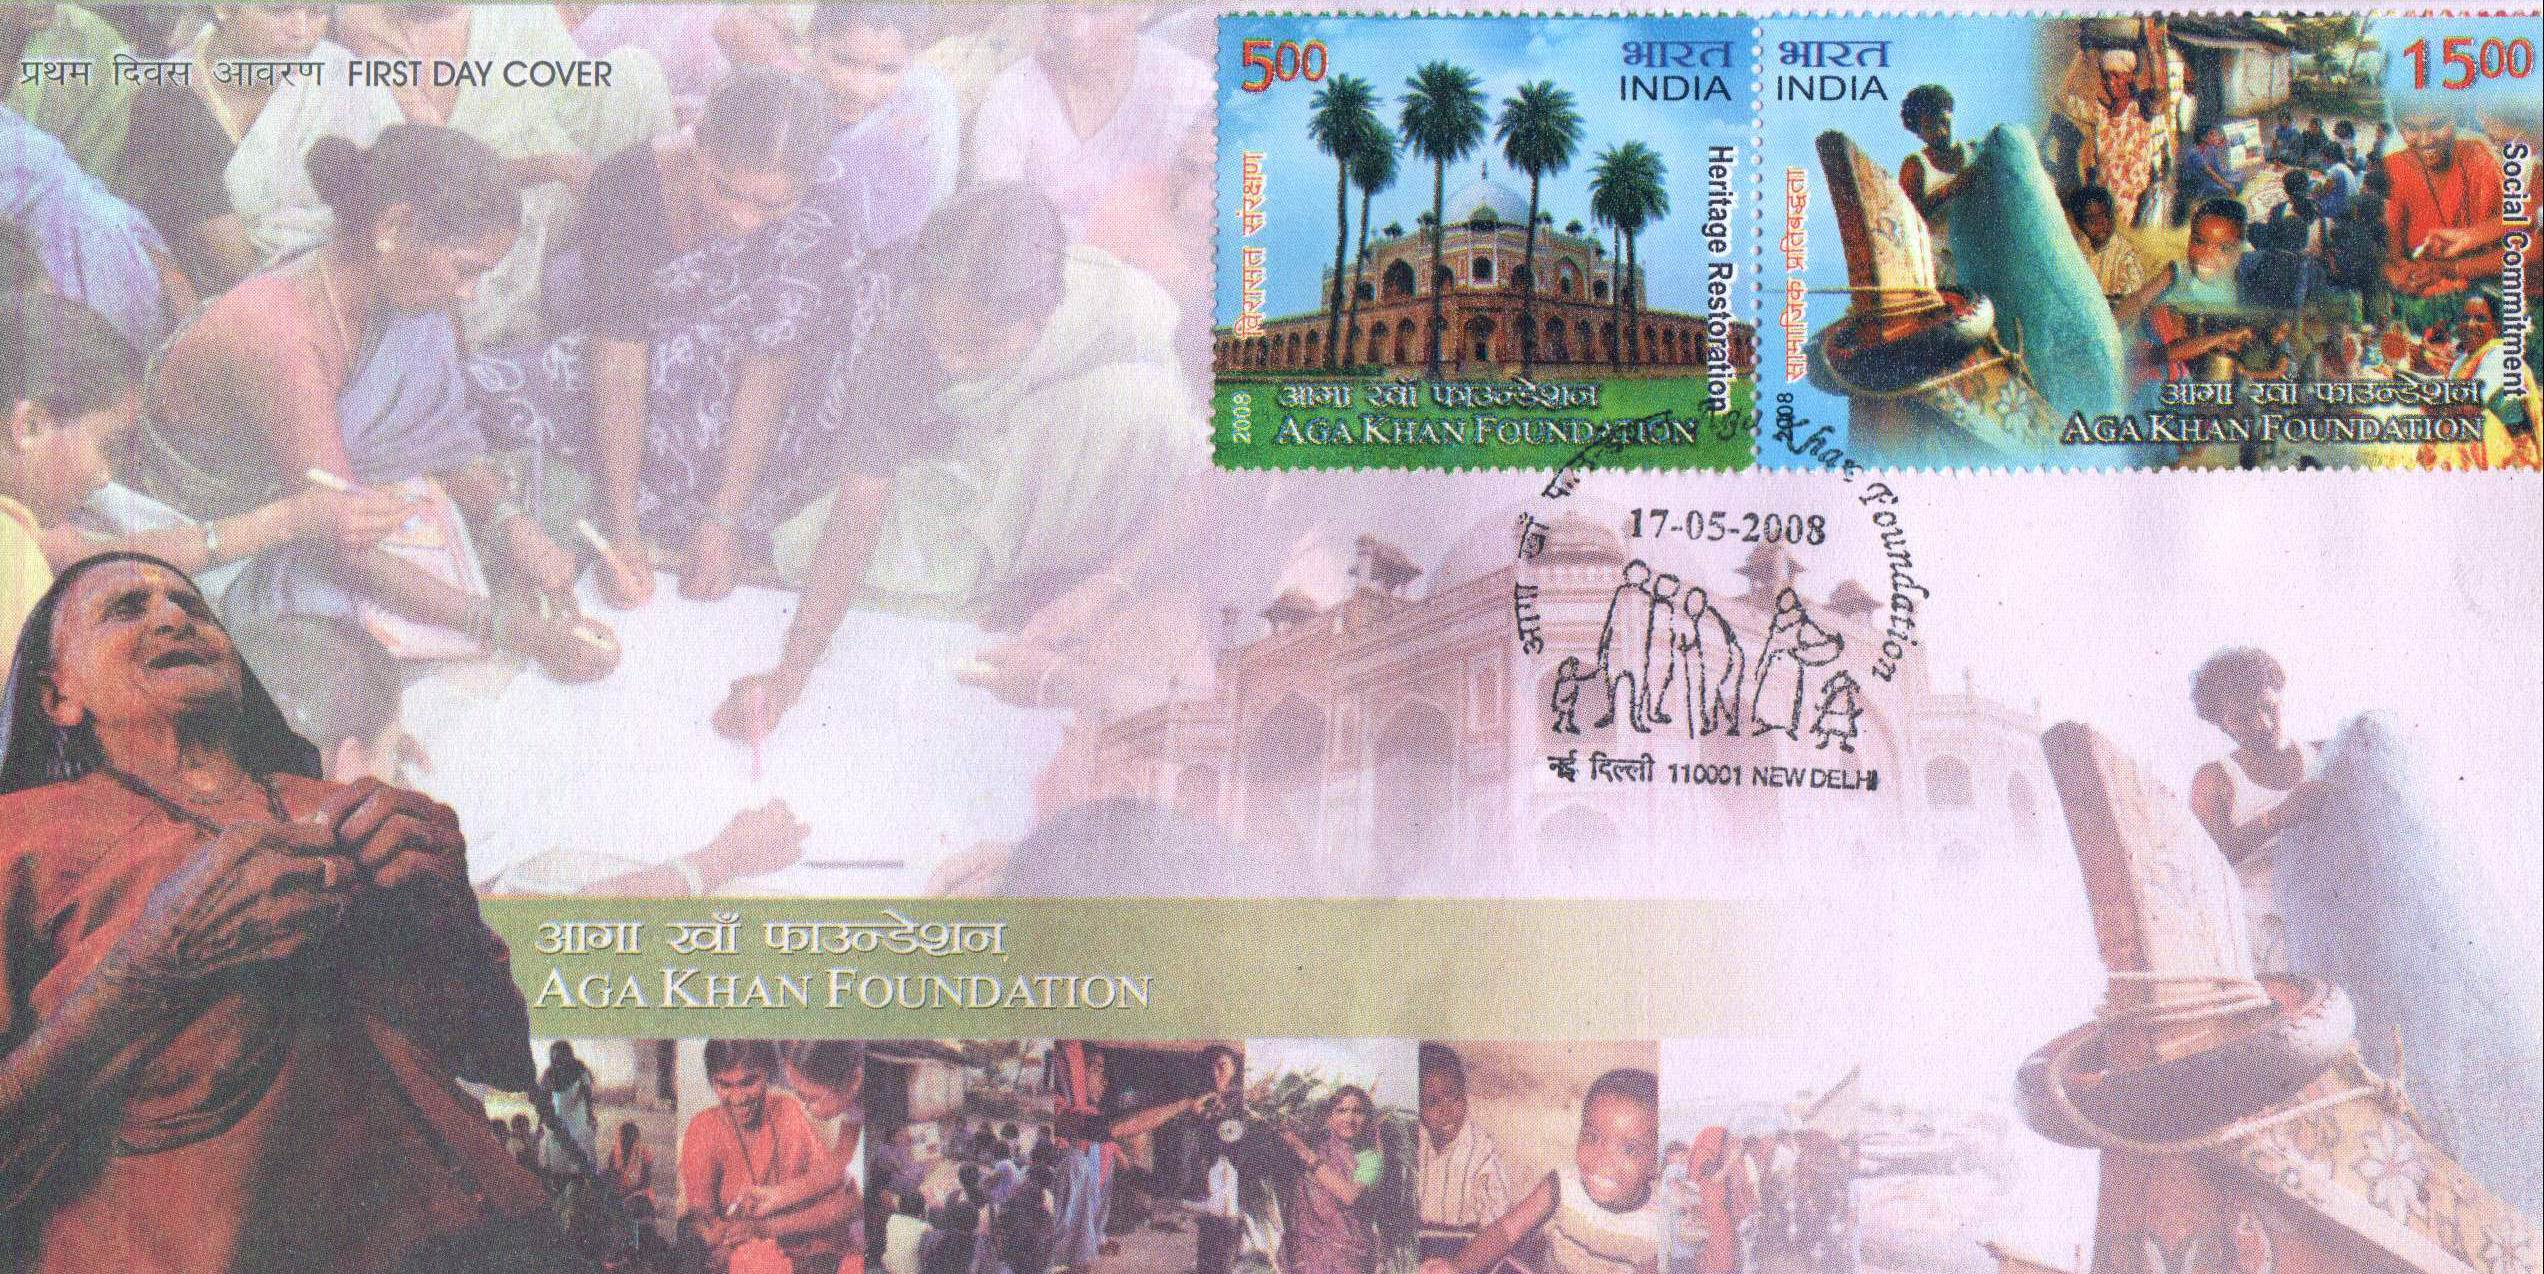 India Fdc 2008 Aga Khan Foundation Polio Medicine